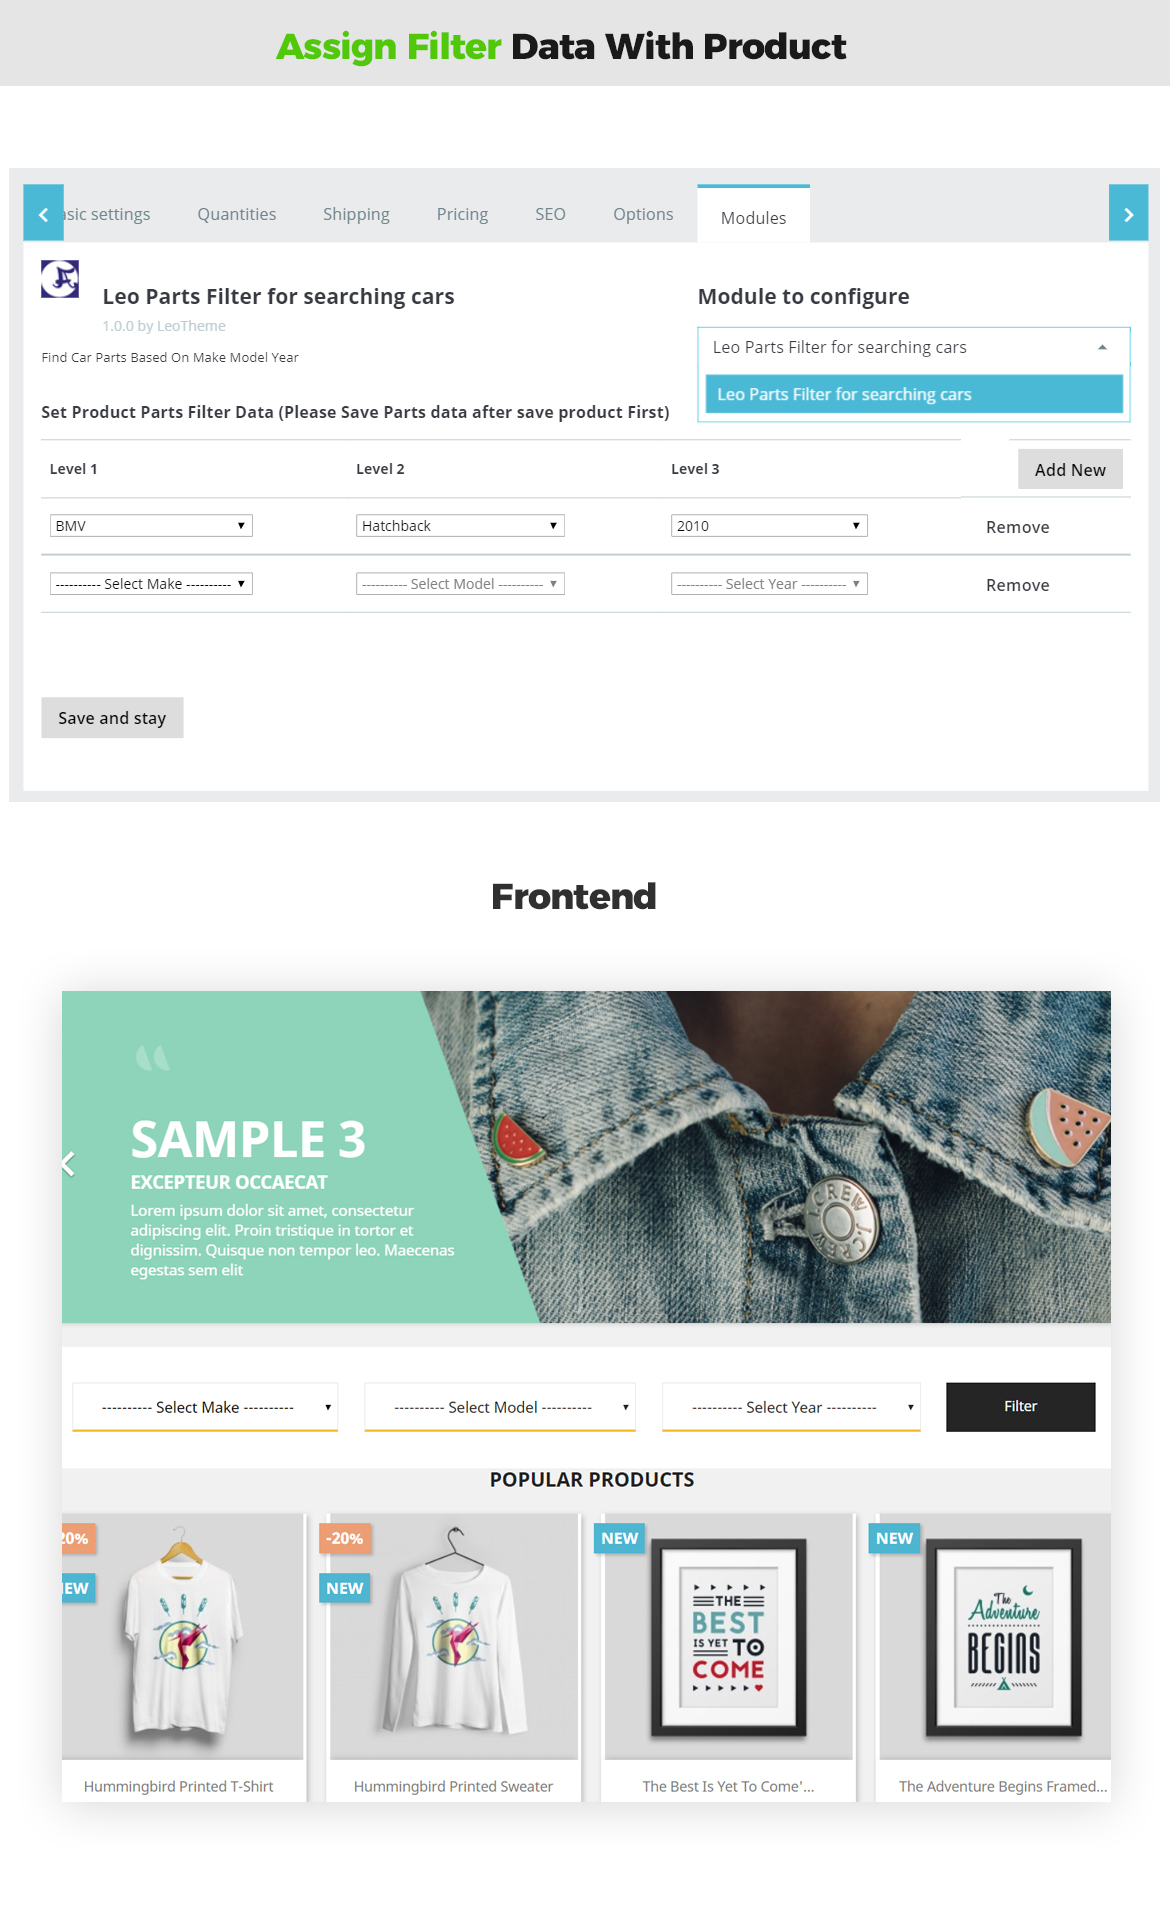 assign filter data with product - leo car/parts filter prestashop module